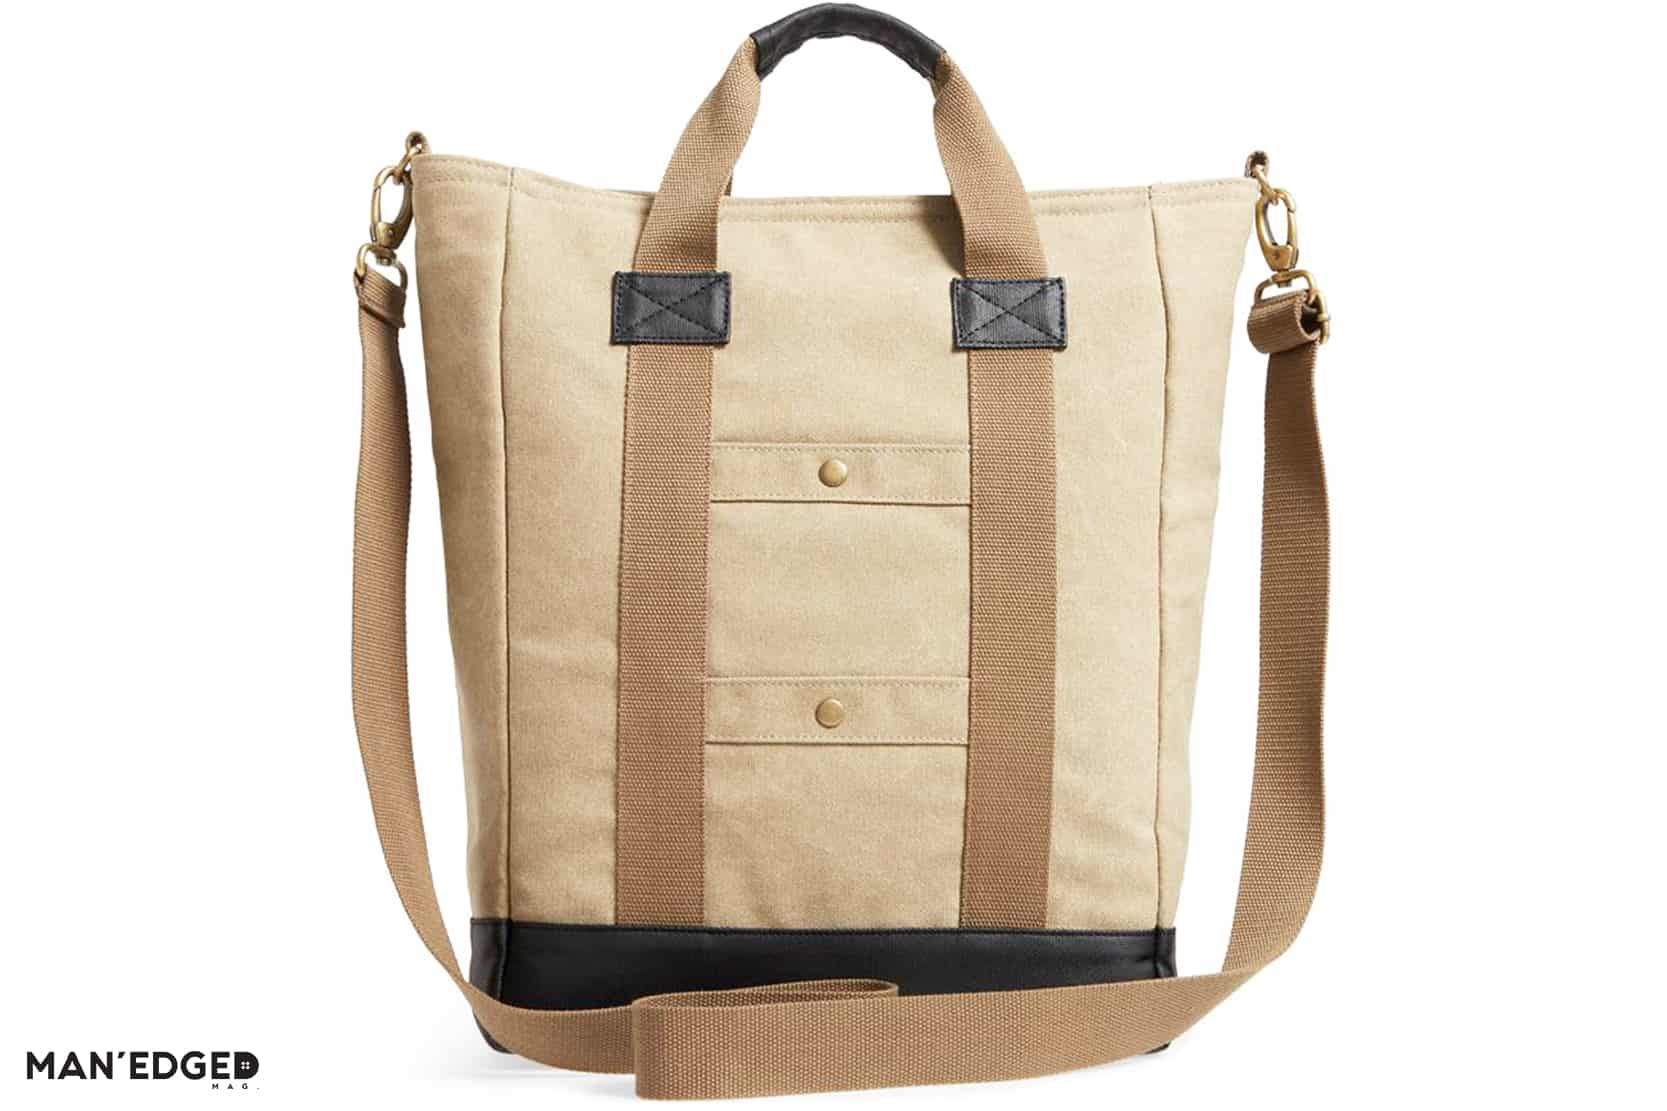 The Outdoorsman Gift Guide featuring Men's HEX tote bag from Nordstrom